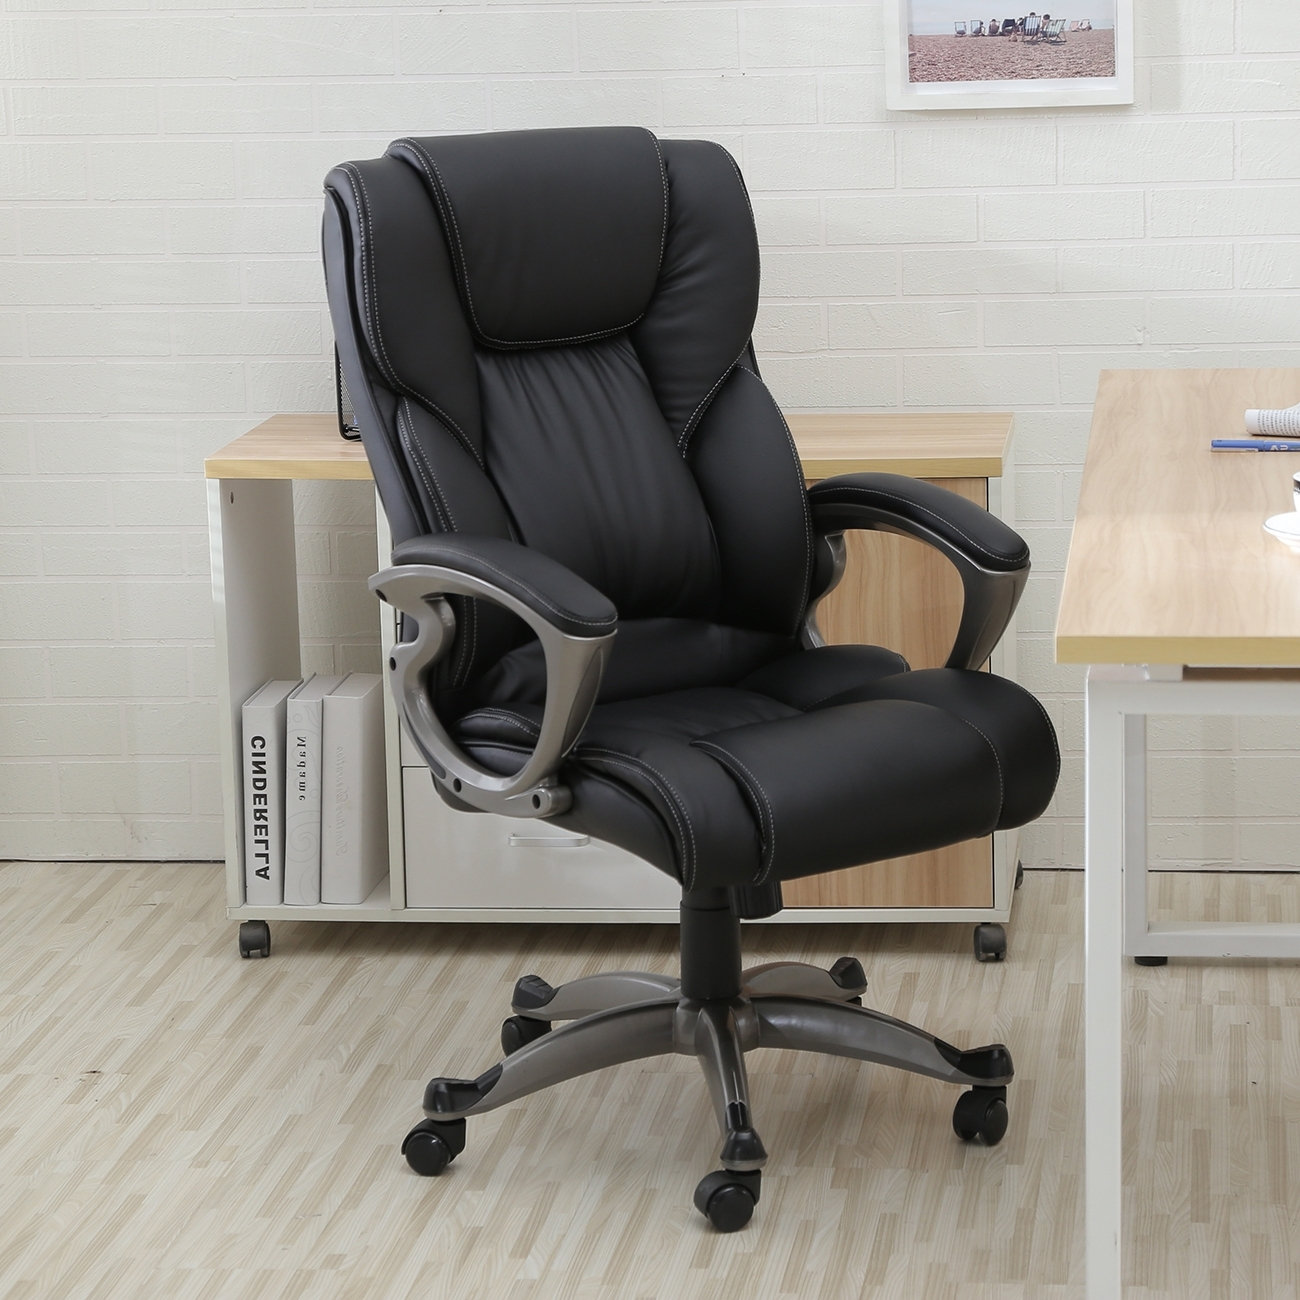 Belleze High Back Executive Faux Leather Office Chair, Black Within Famous Black Executive Office Chairs With High Back (View 3 of 20)